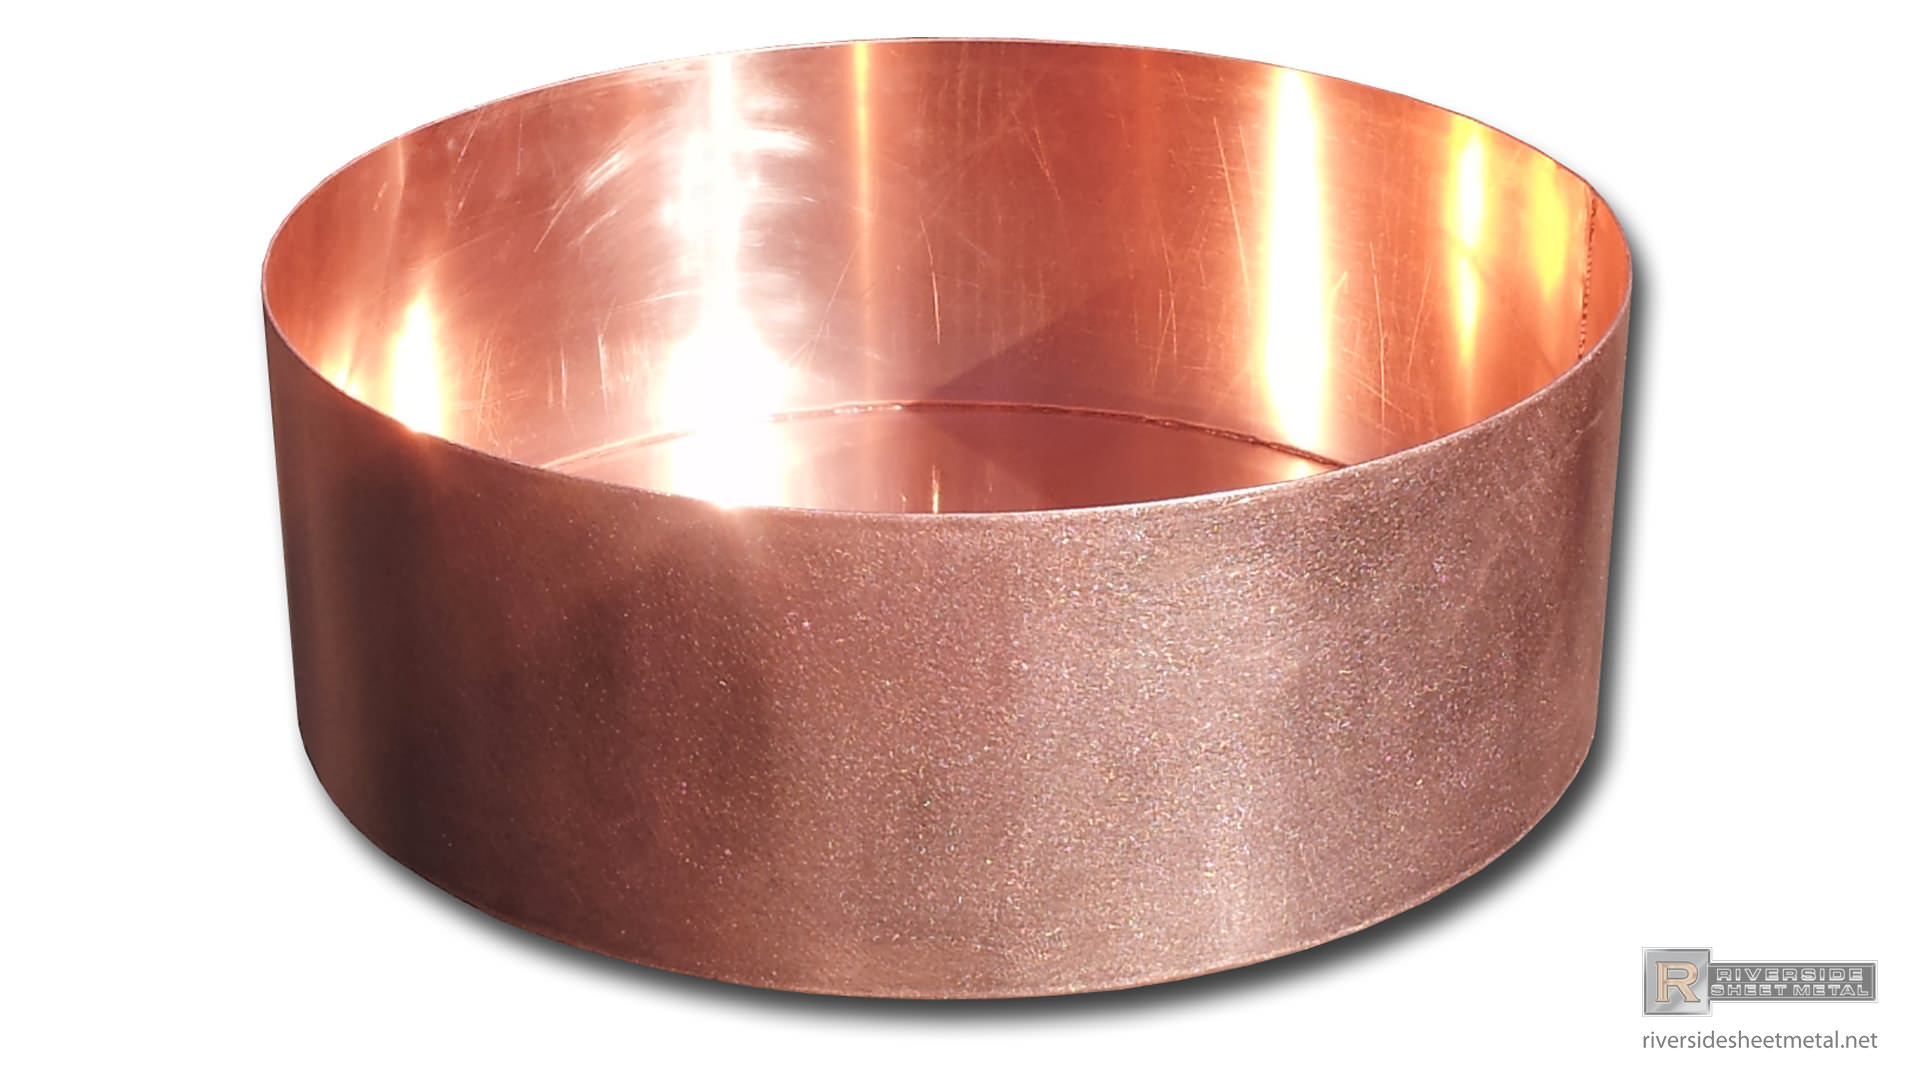 Round Copper Planter Custom Fabricated Riverside Sheet Metal